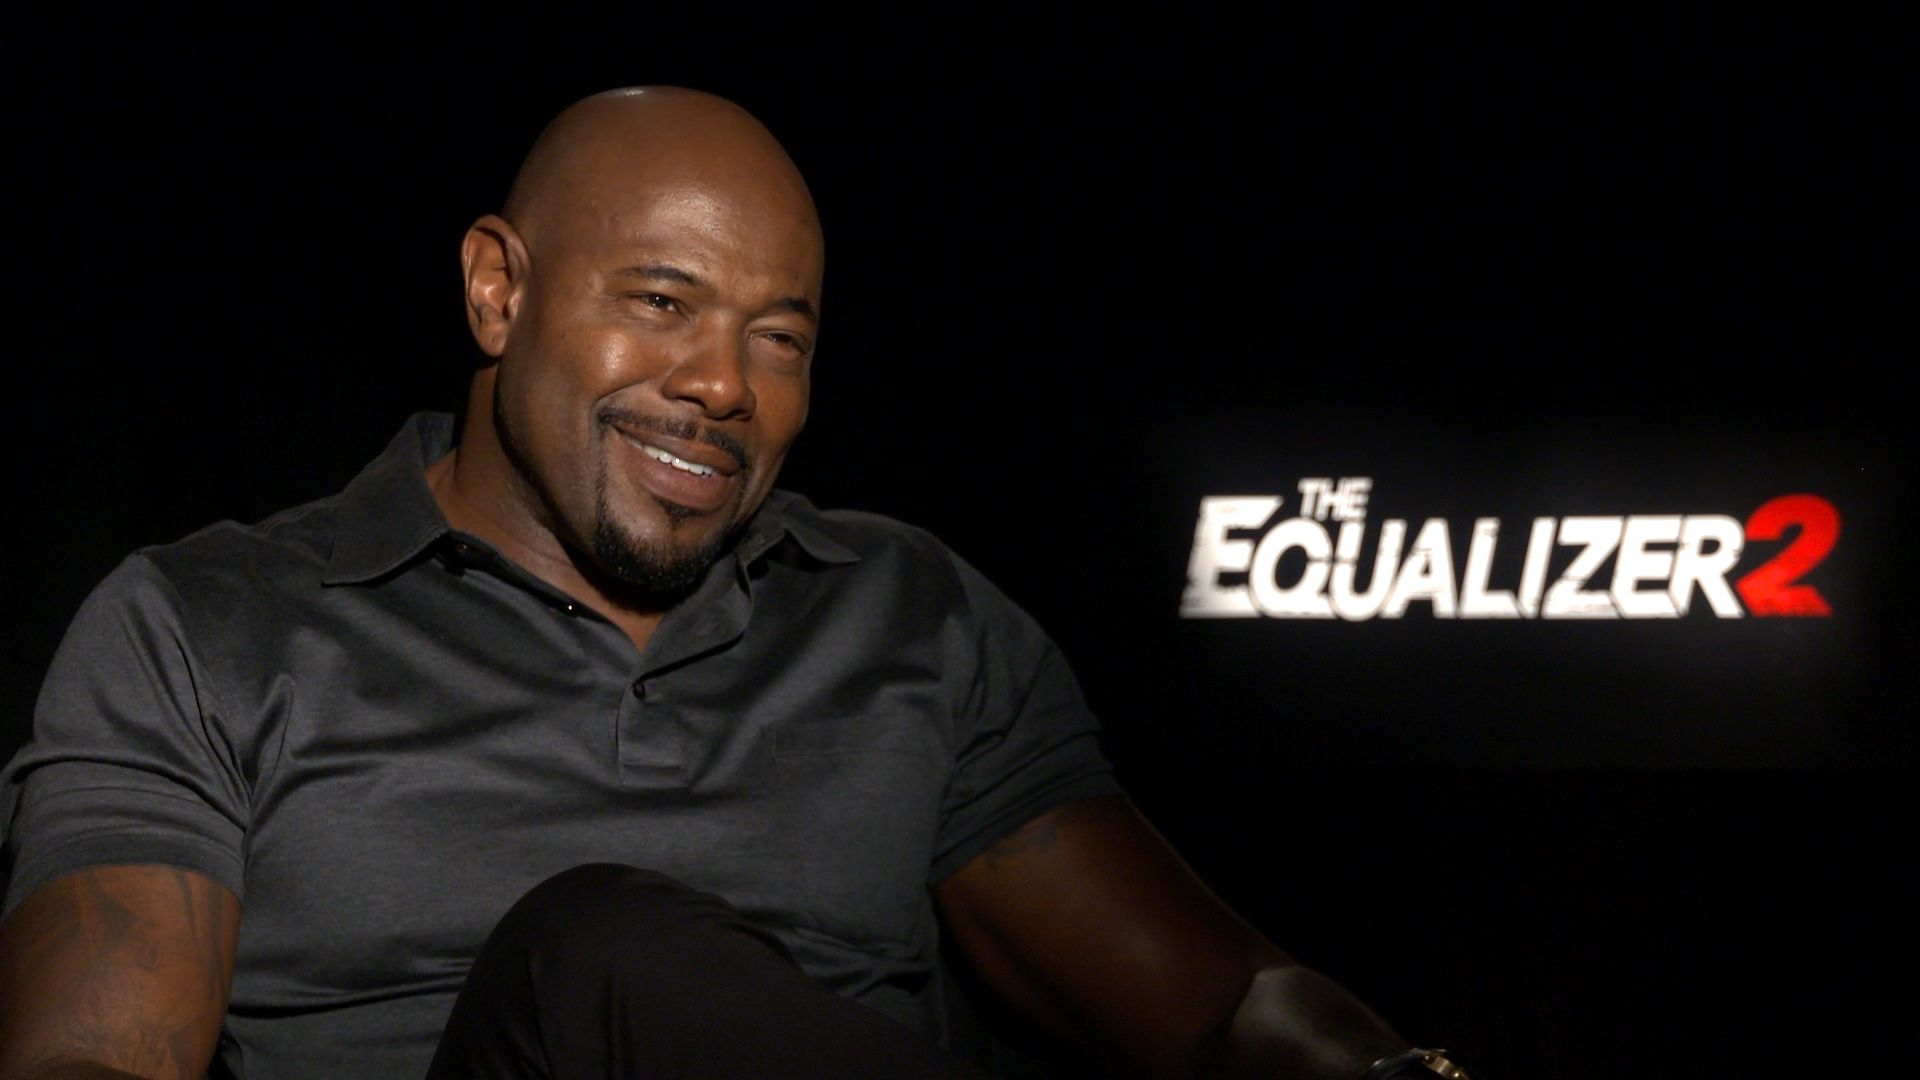 Antoine Fuqua on The Equalizer 2 and How the Archangel Michael